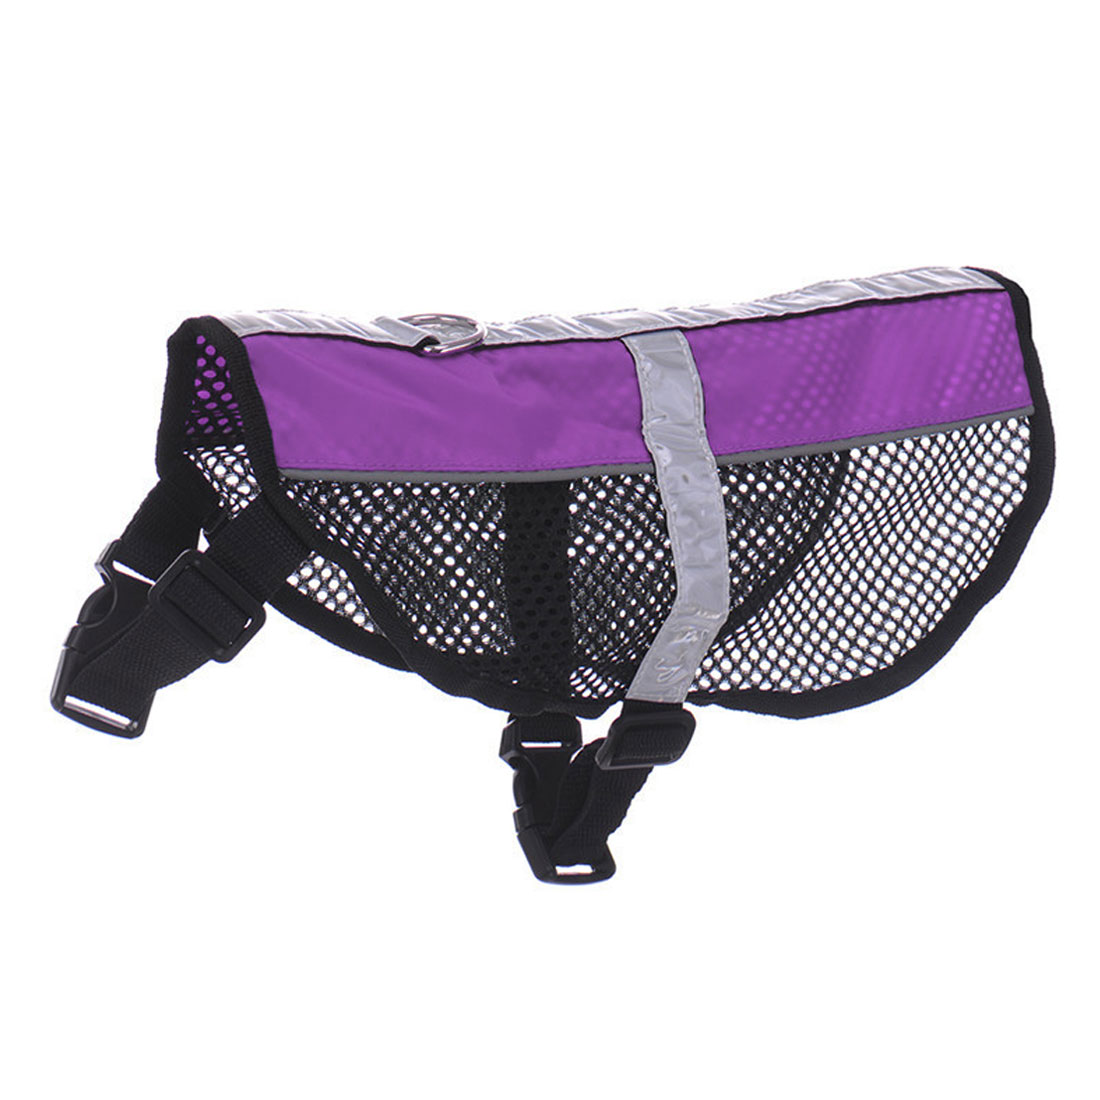 Service Dog Mesh Vest Harness Cool Comfort Nylon High Visibility Safety Jacket Purple L